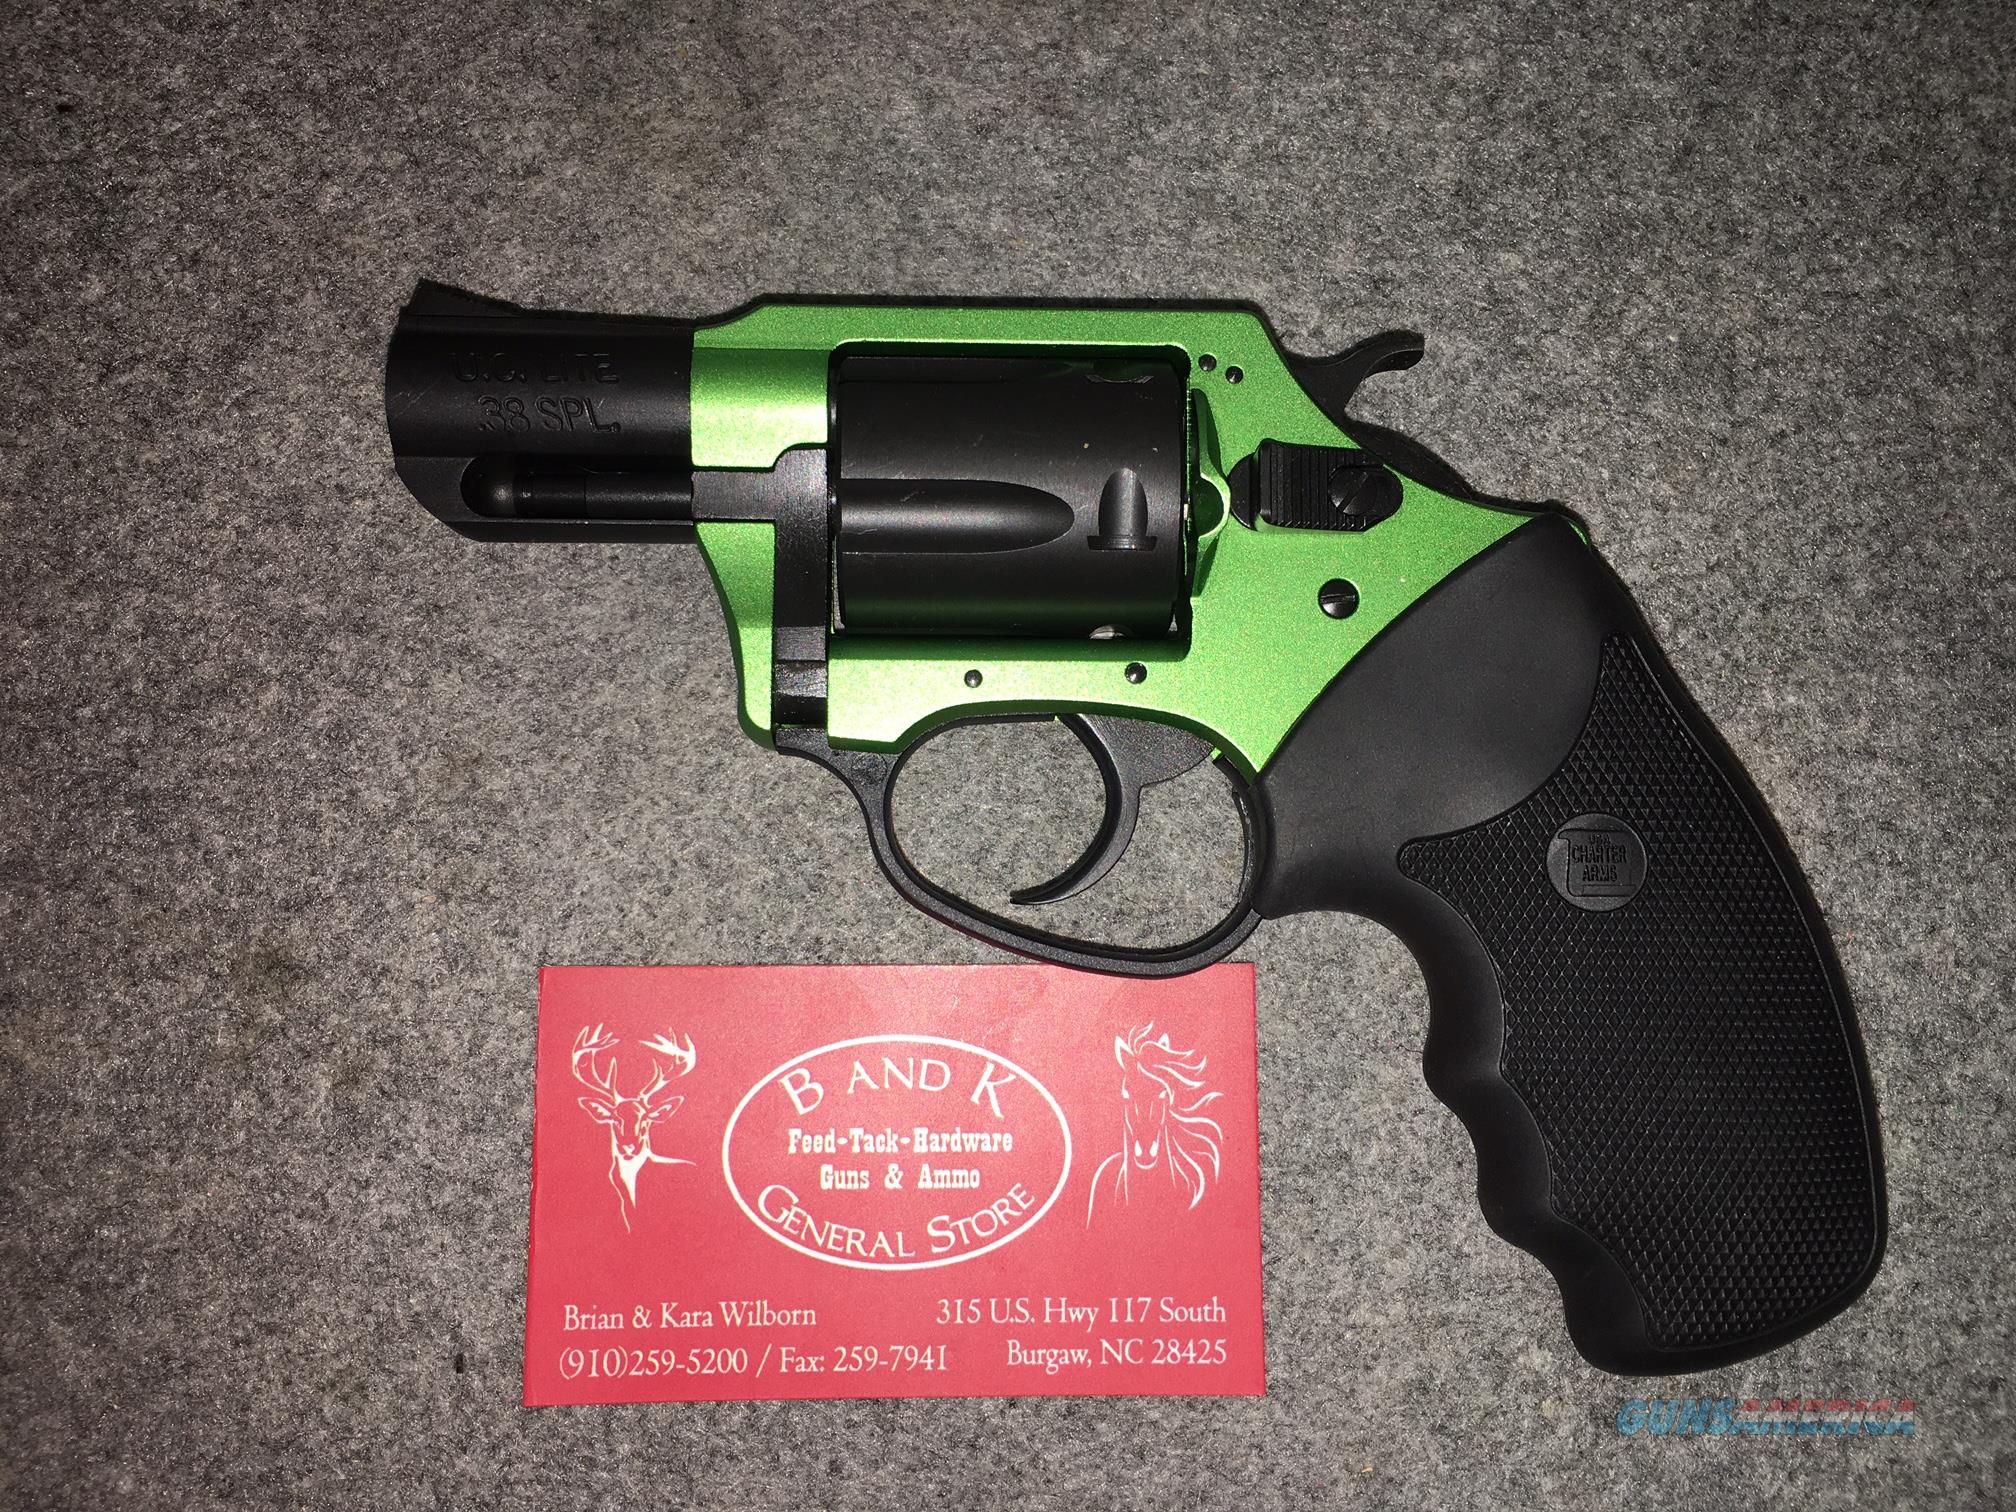 CHARTER ARMS ,38 SPECIAL ,SHAMROCK, 53844, U.C LITE  Guns > Pistols > Charter Arms Revolvers